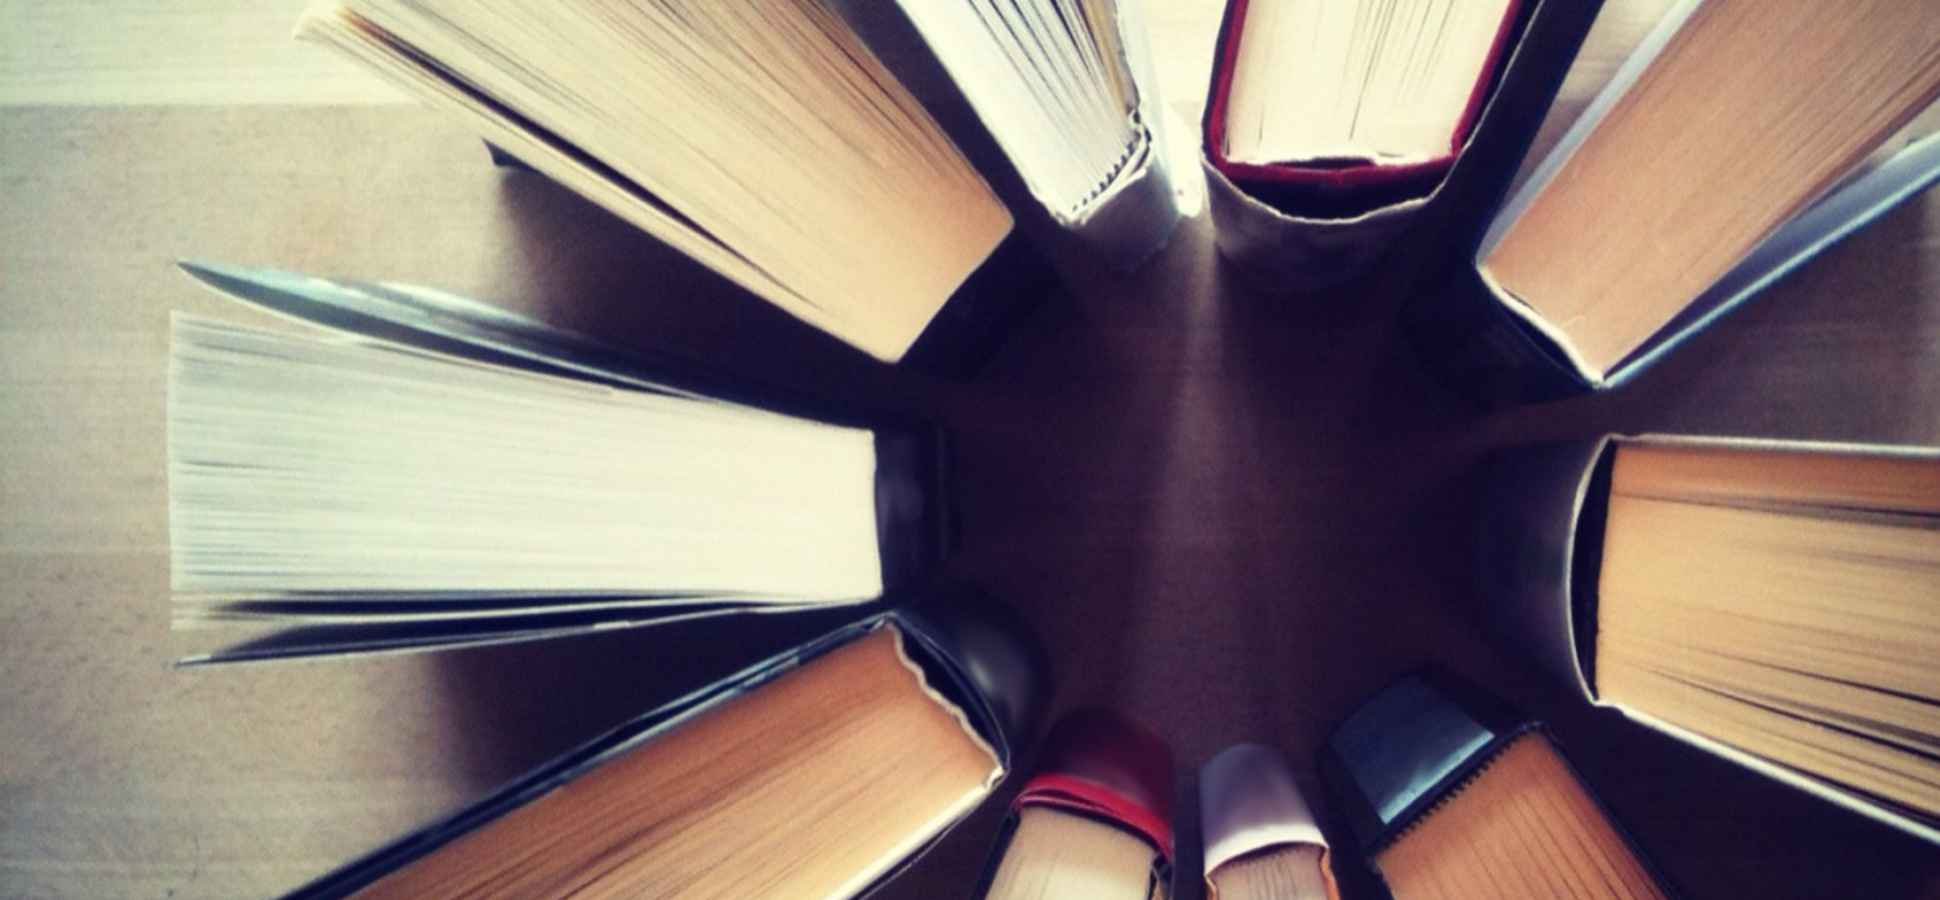 52 Business Books the Fortune 500 CEOs Think You Should Read